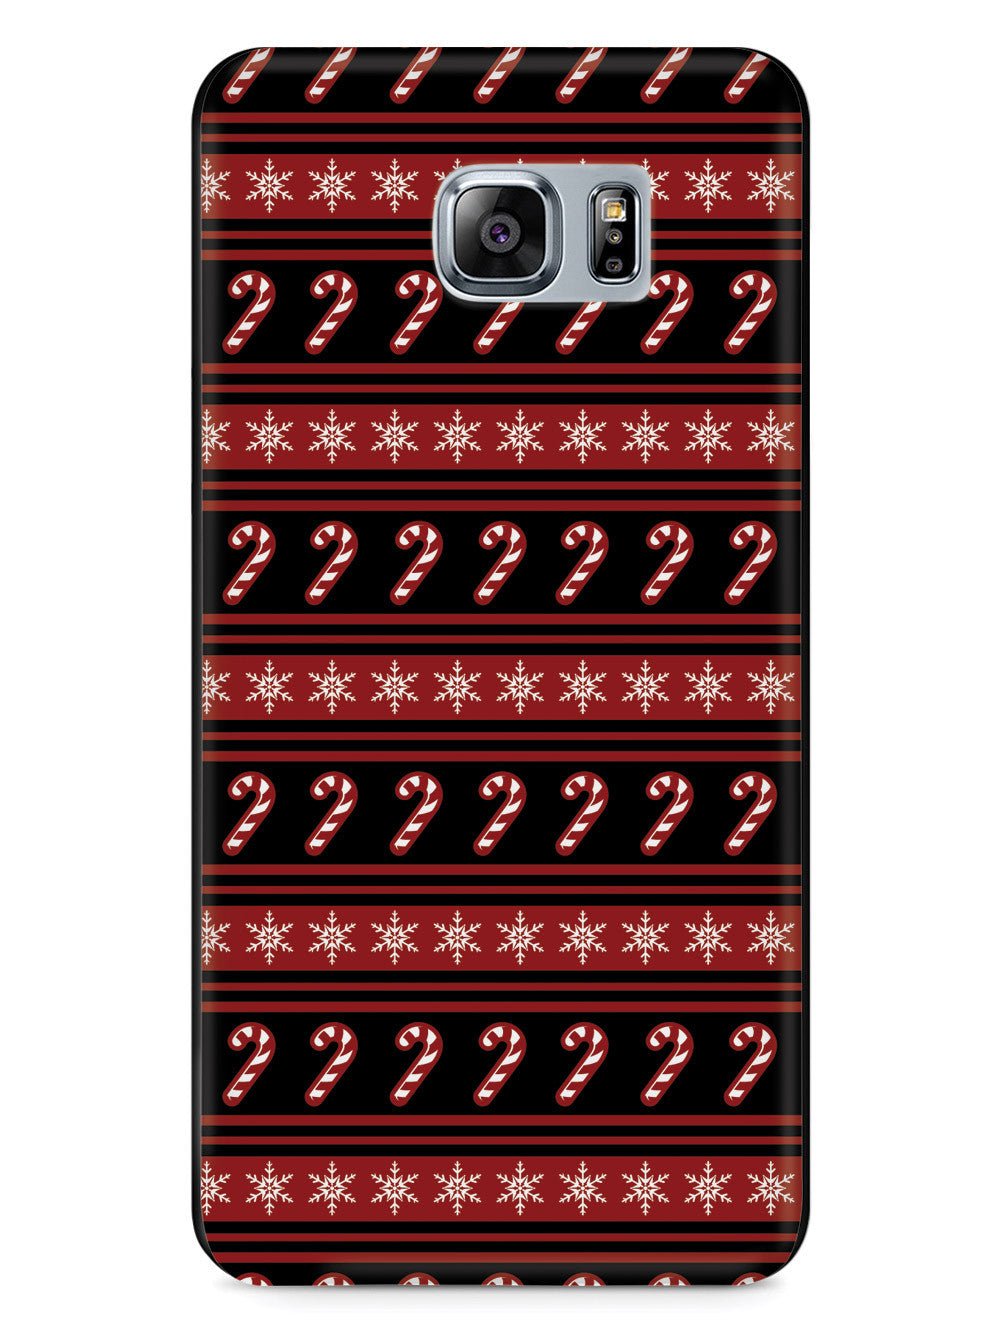 Candy Cane Snow Flakes Pattern - Black Case